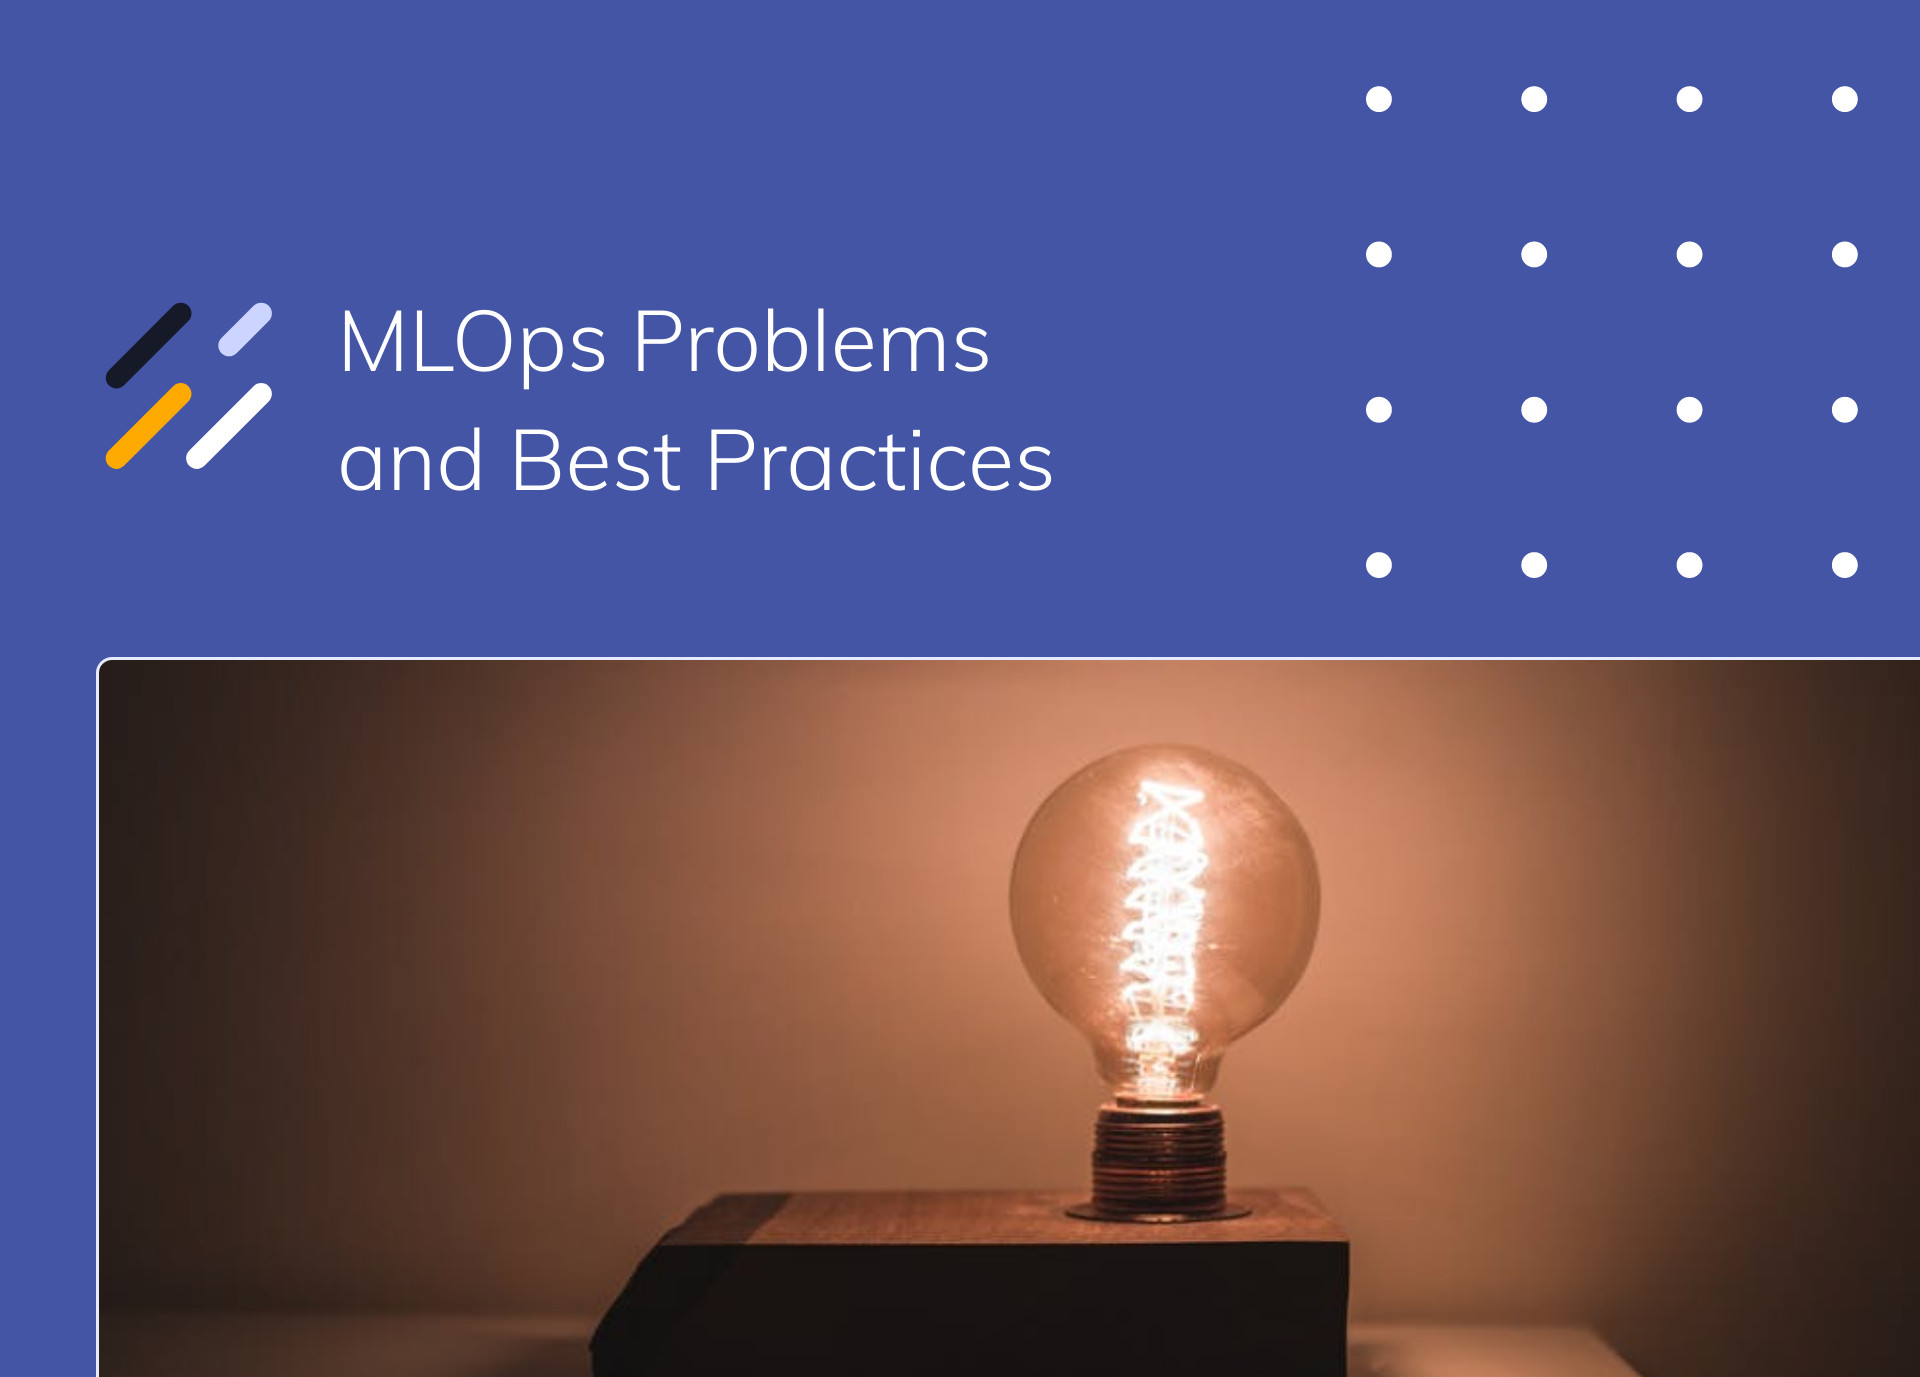 MLOps Problems and Best Practices